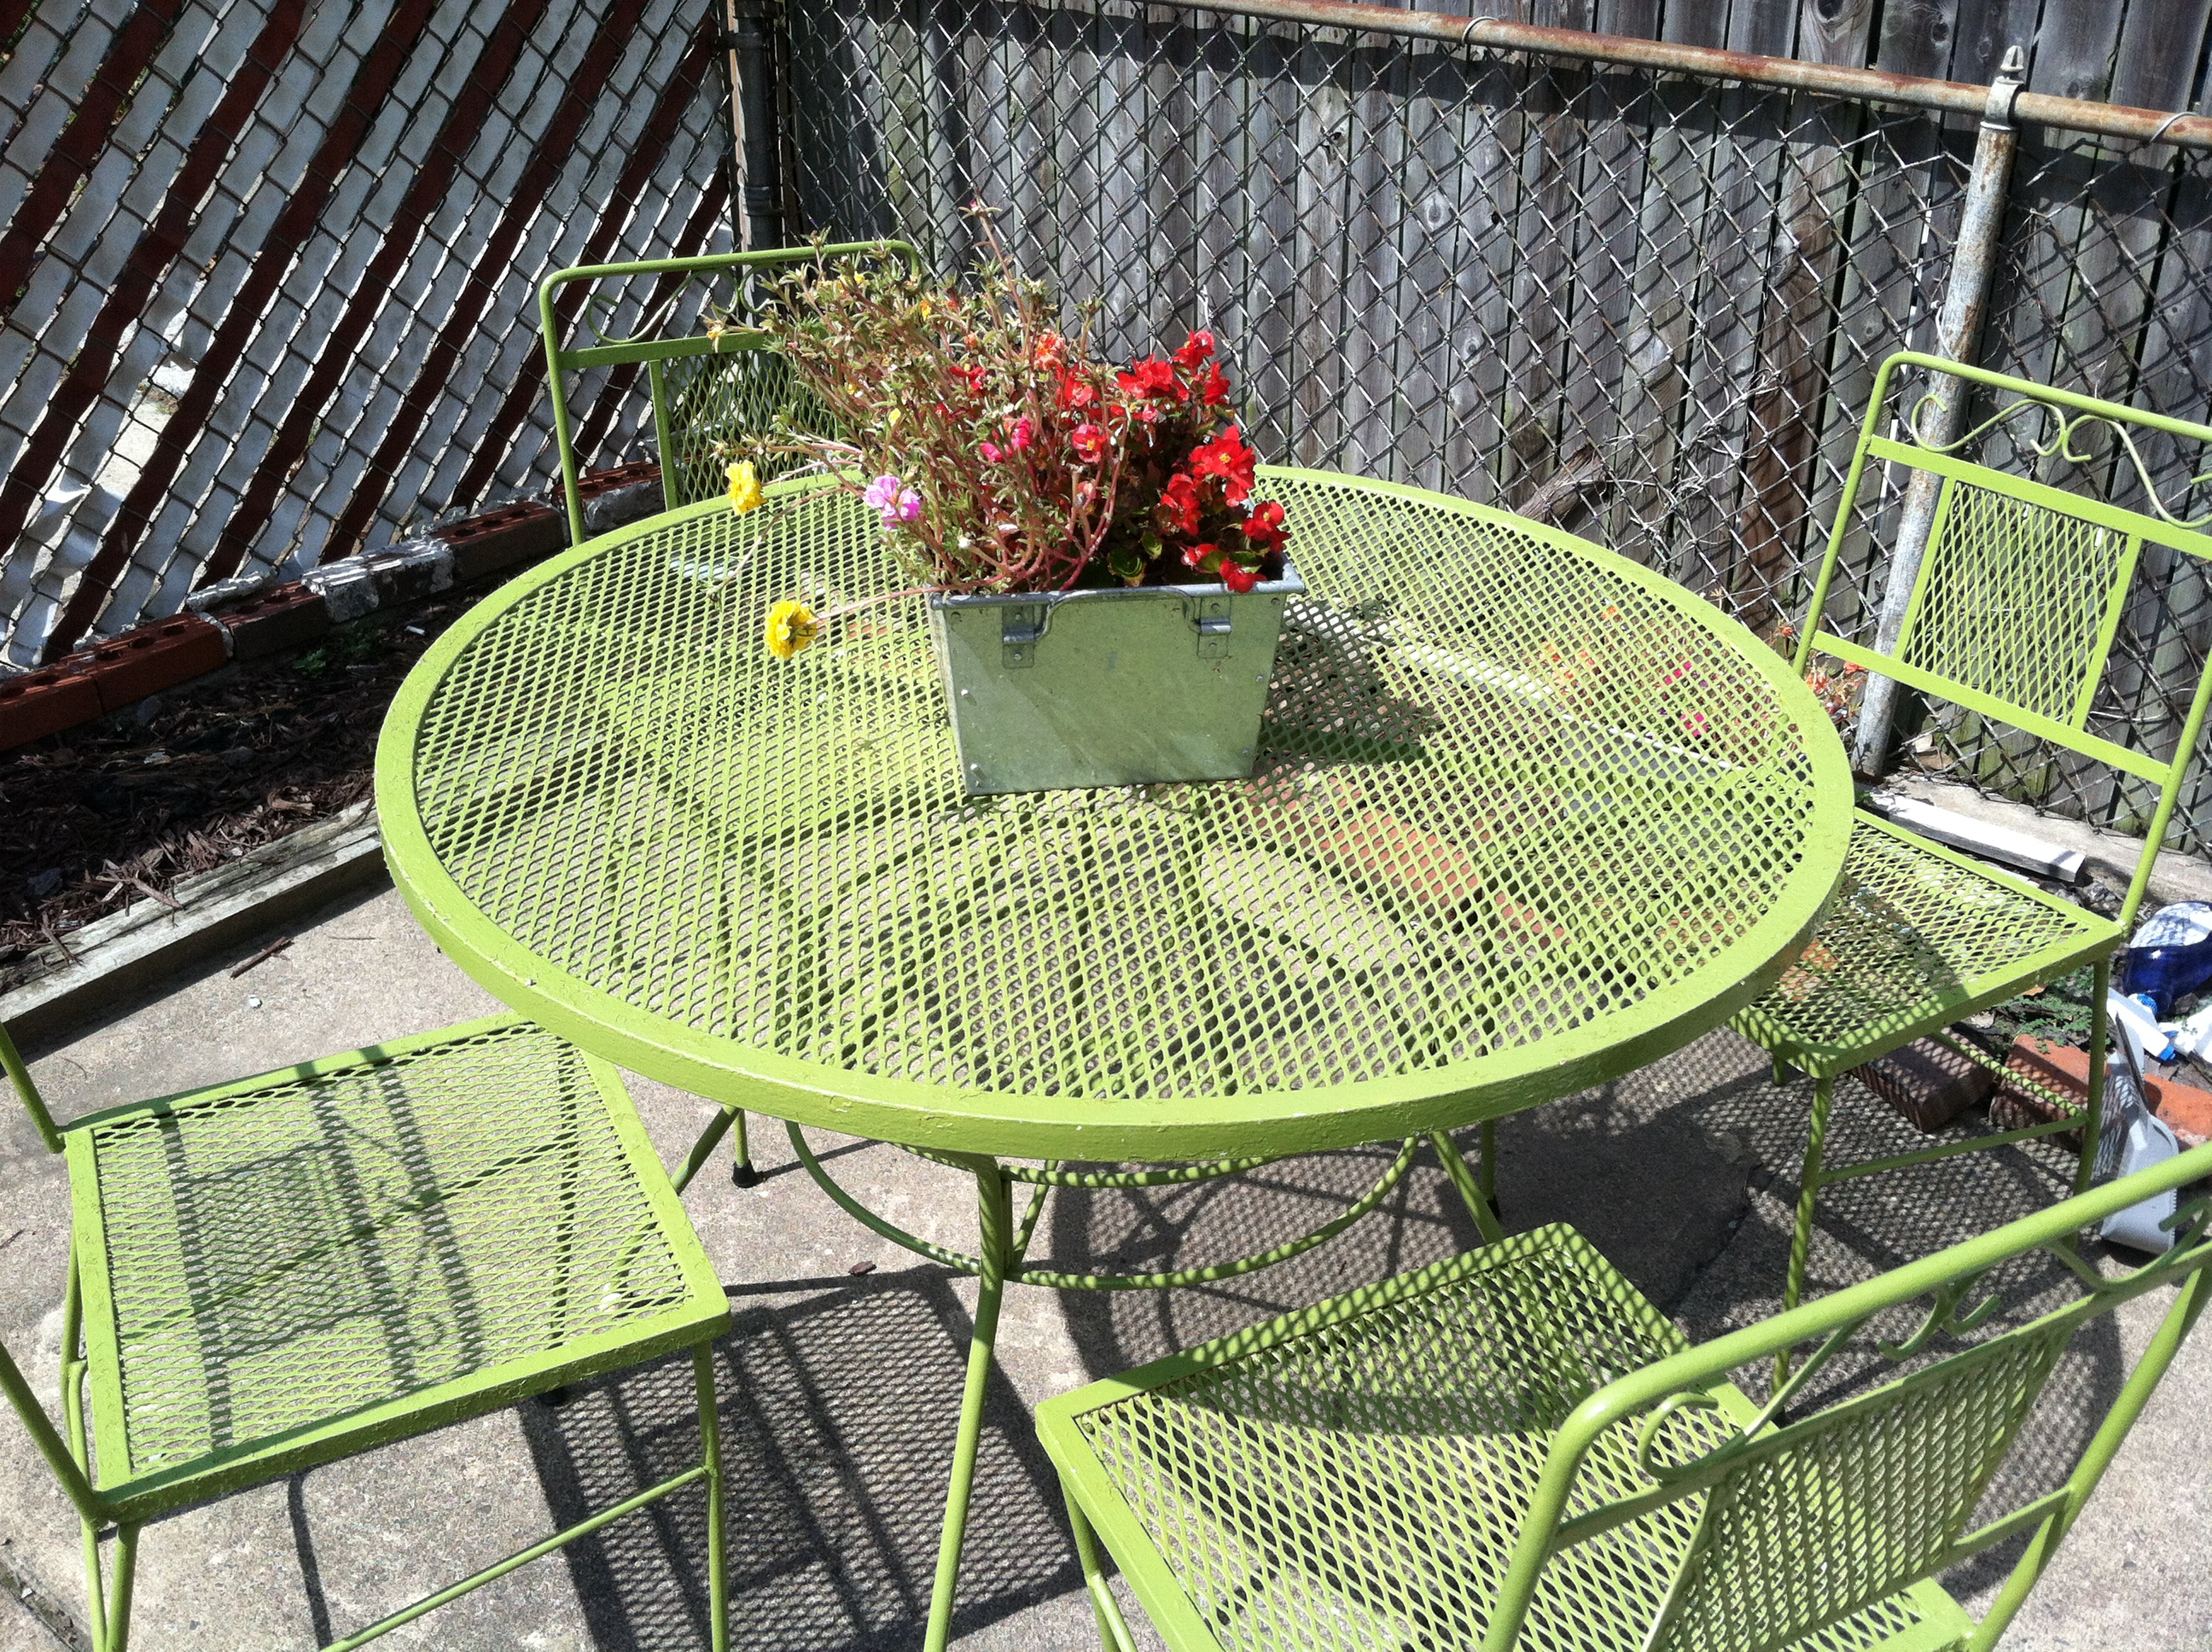 Green Patio Chairs Weekend Diy Turn An Old Shower Curtain Into Super Cute